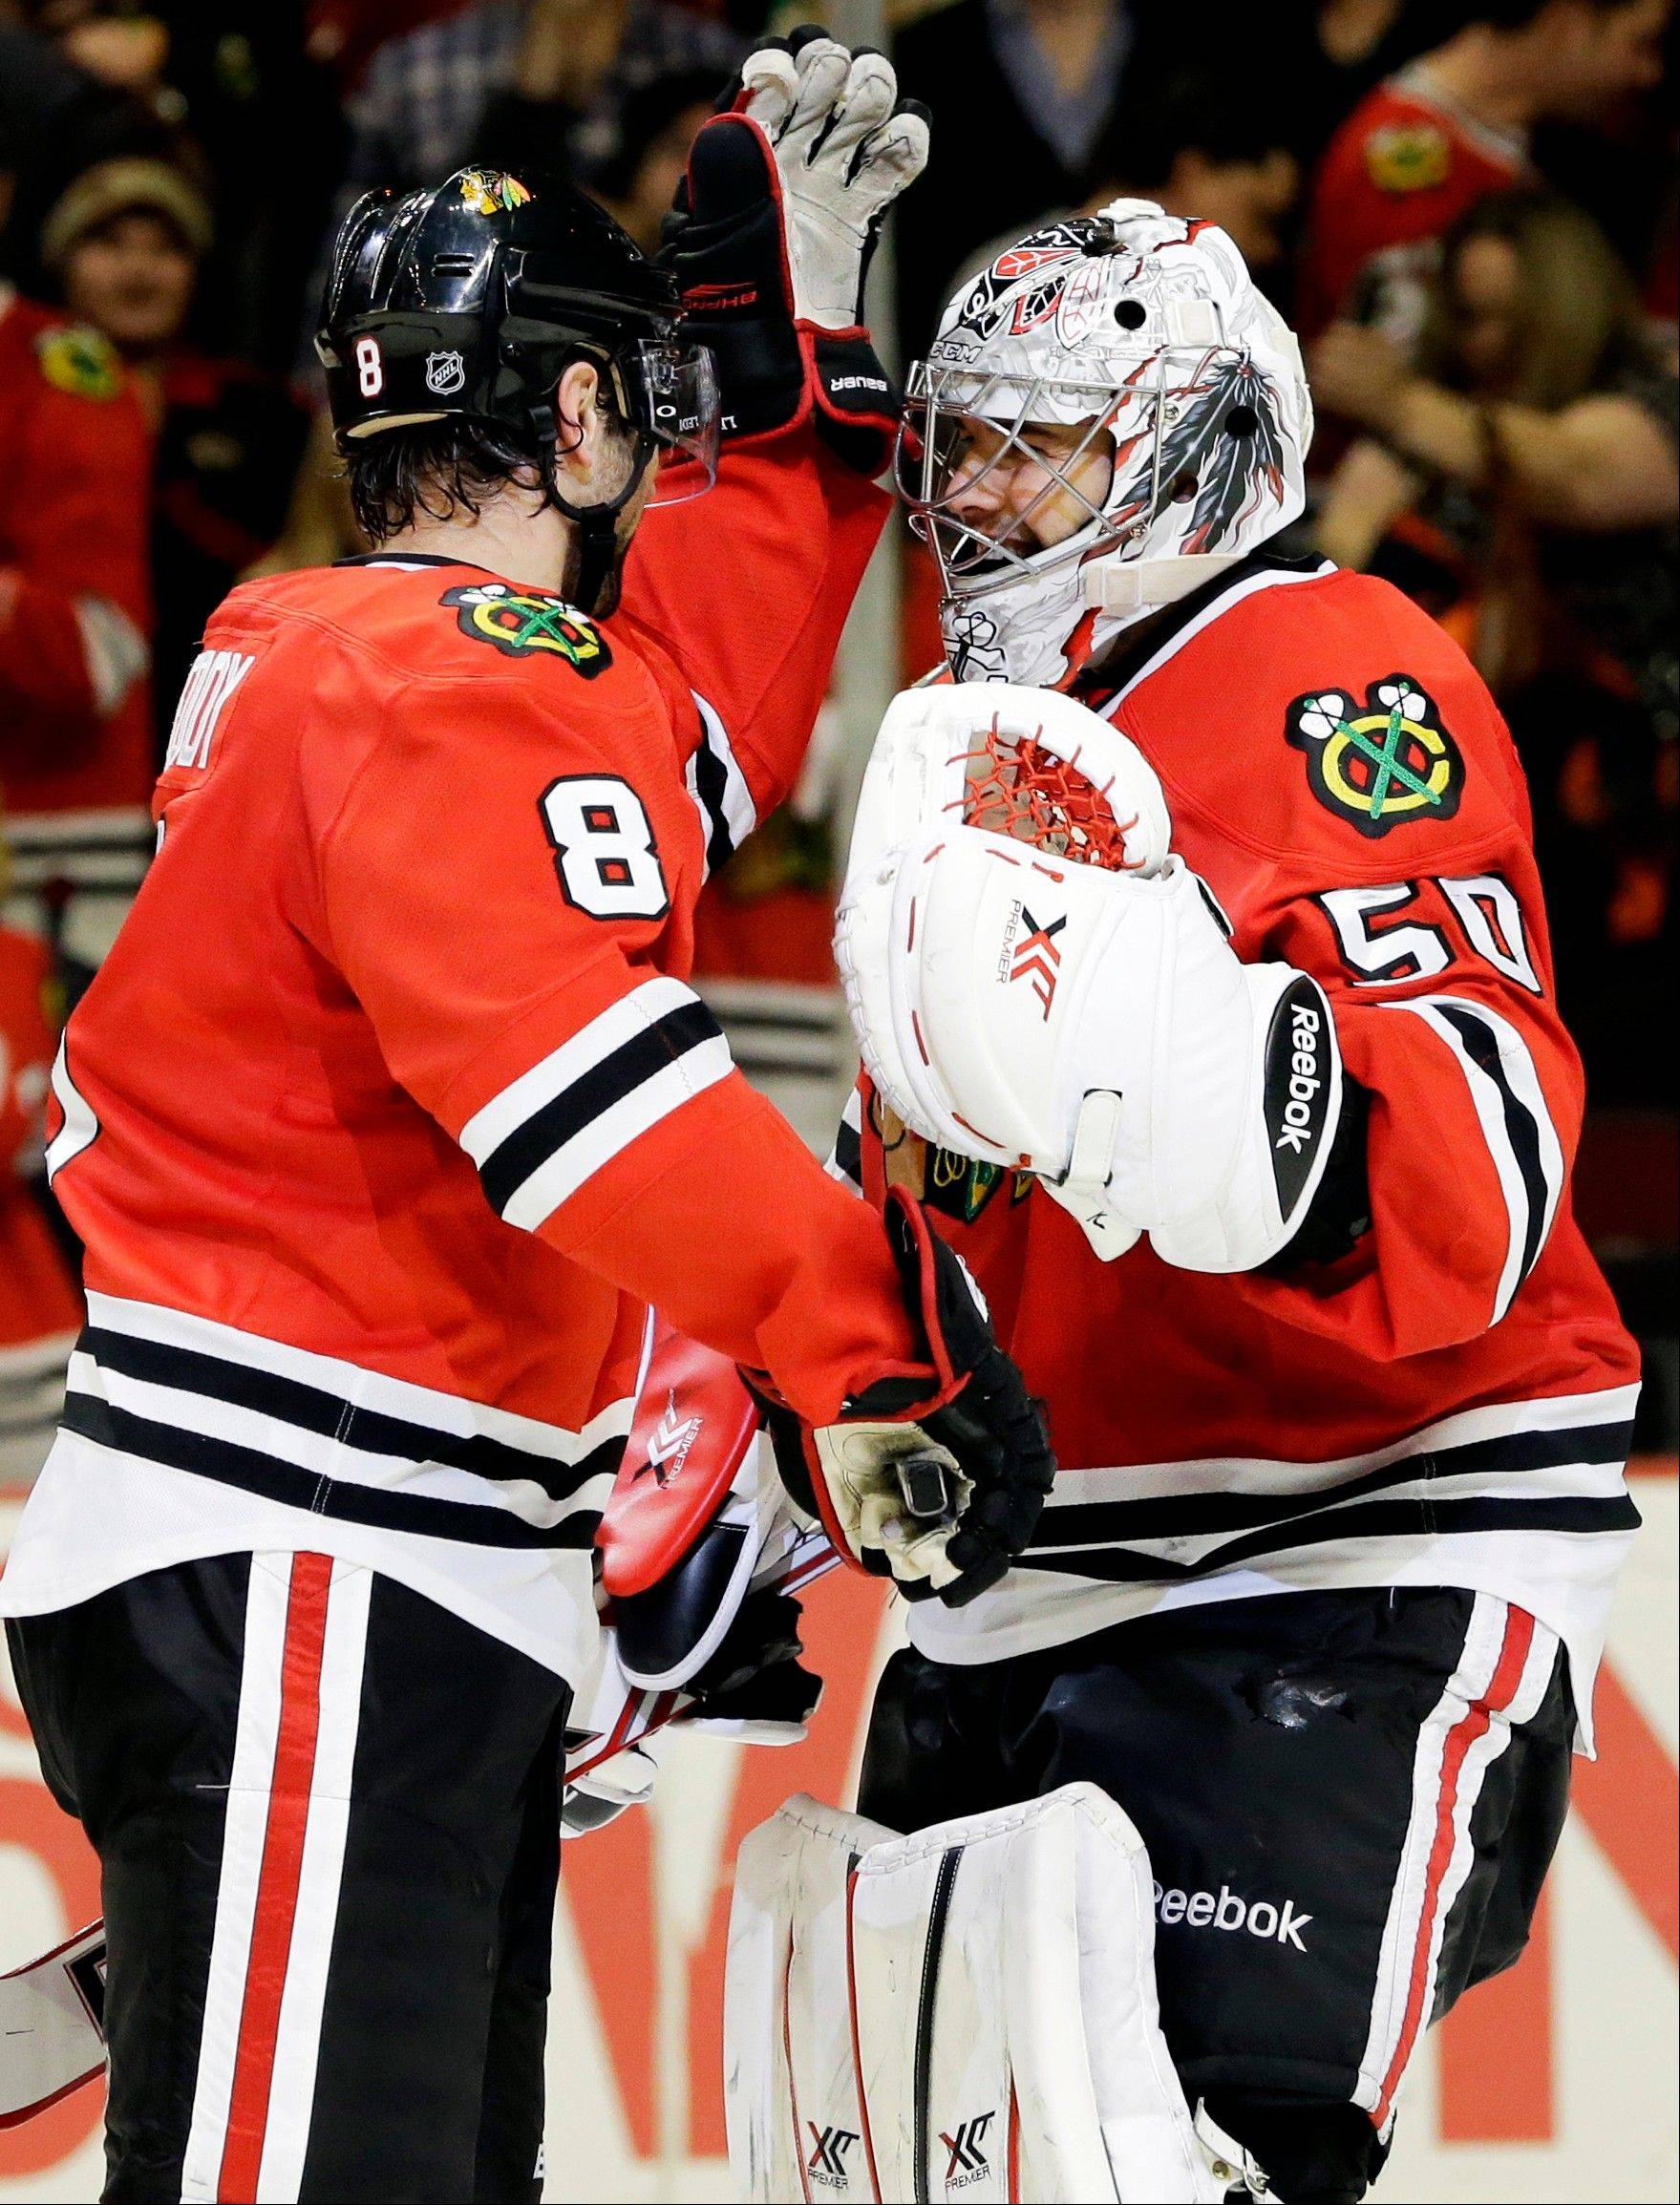 Associated PressThe Blackhawks will go with goalie Corey Crawford, right, for Saturday's game, but head coach Joel Quenneville would not say if backup Nikolai Khabibulin will start Sunday's game.